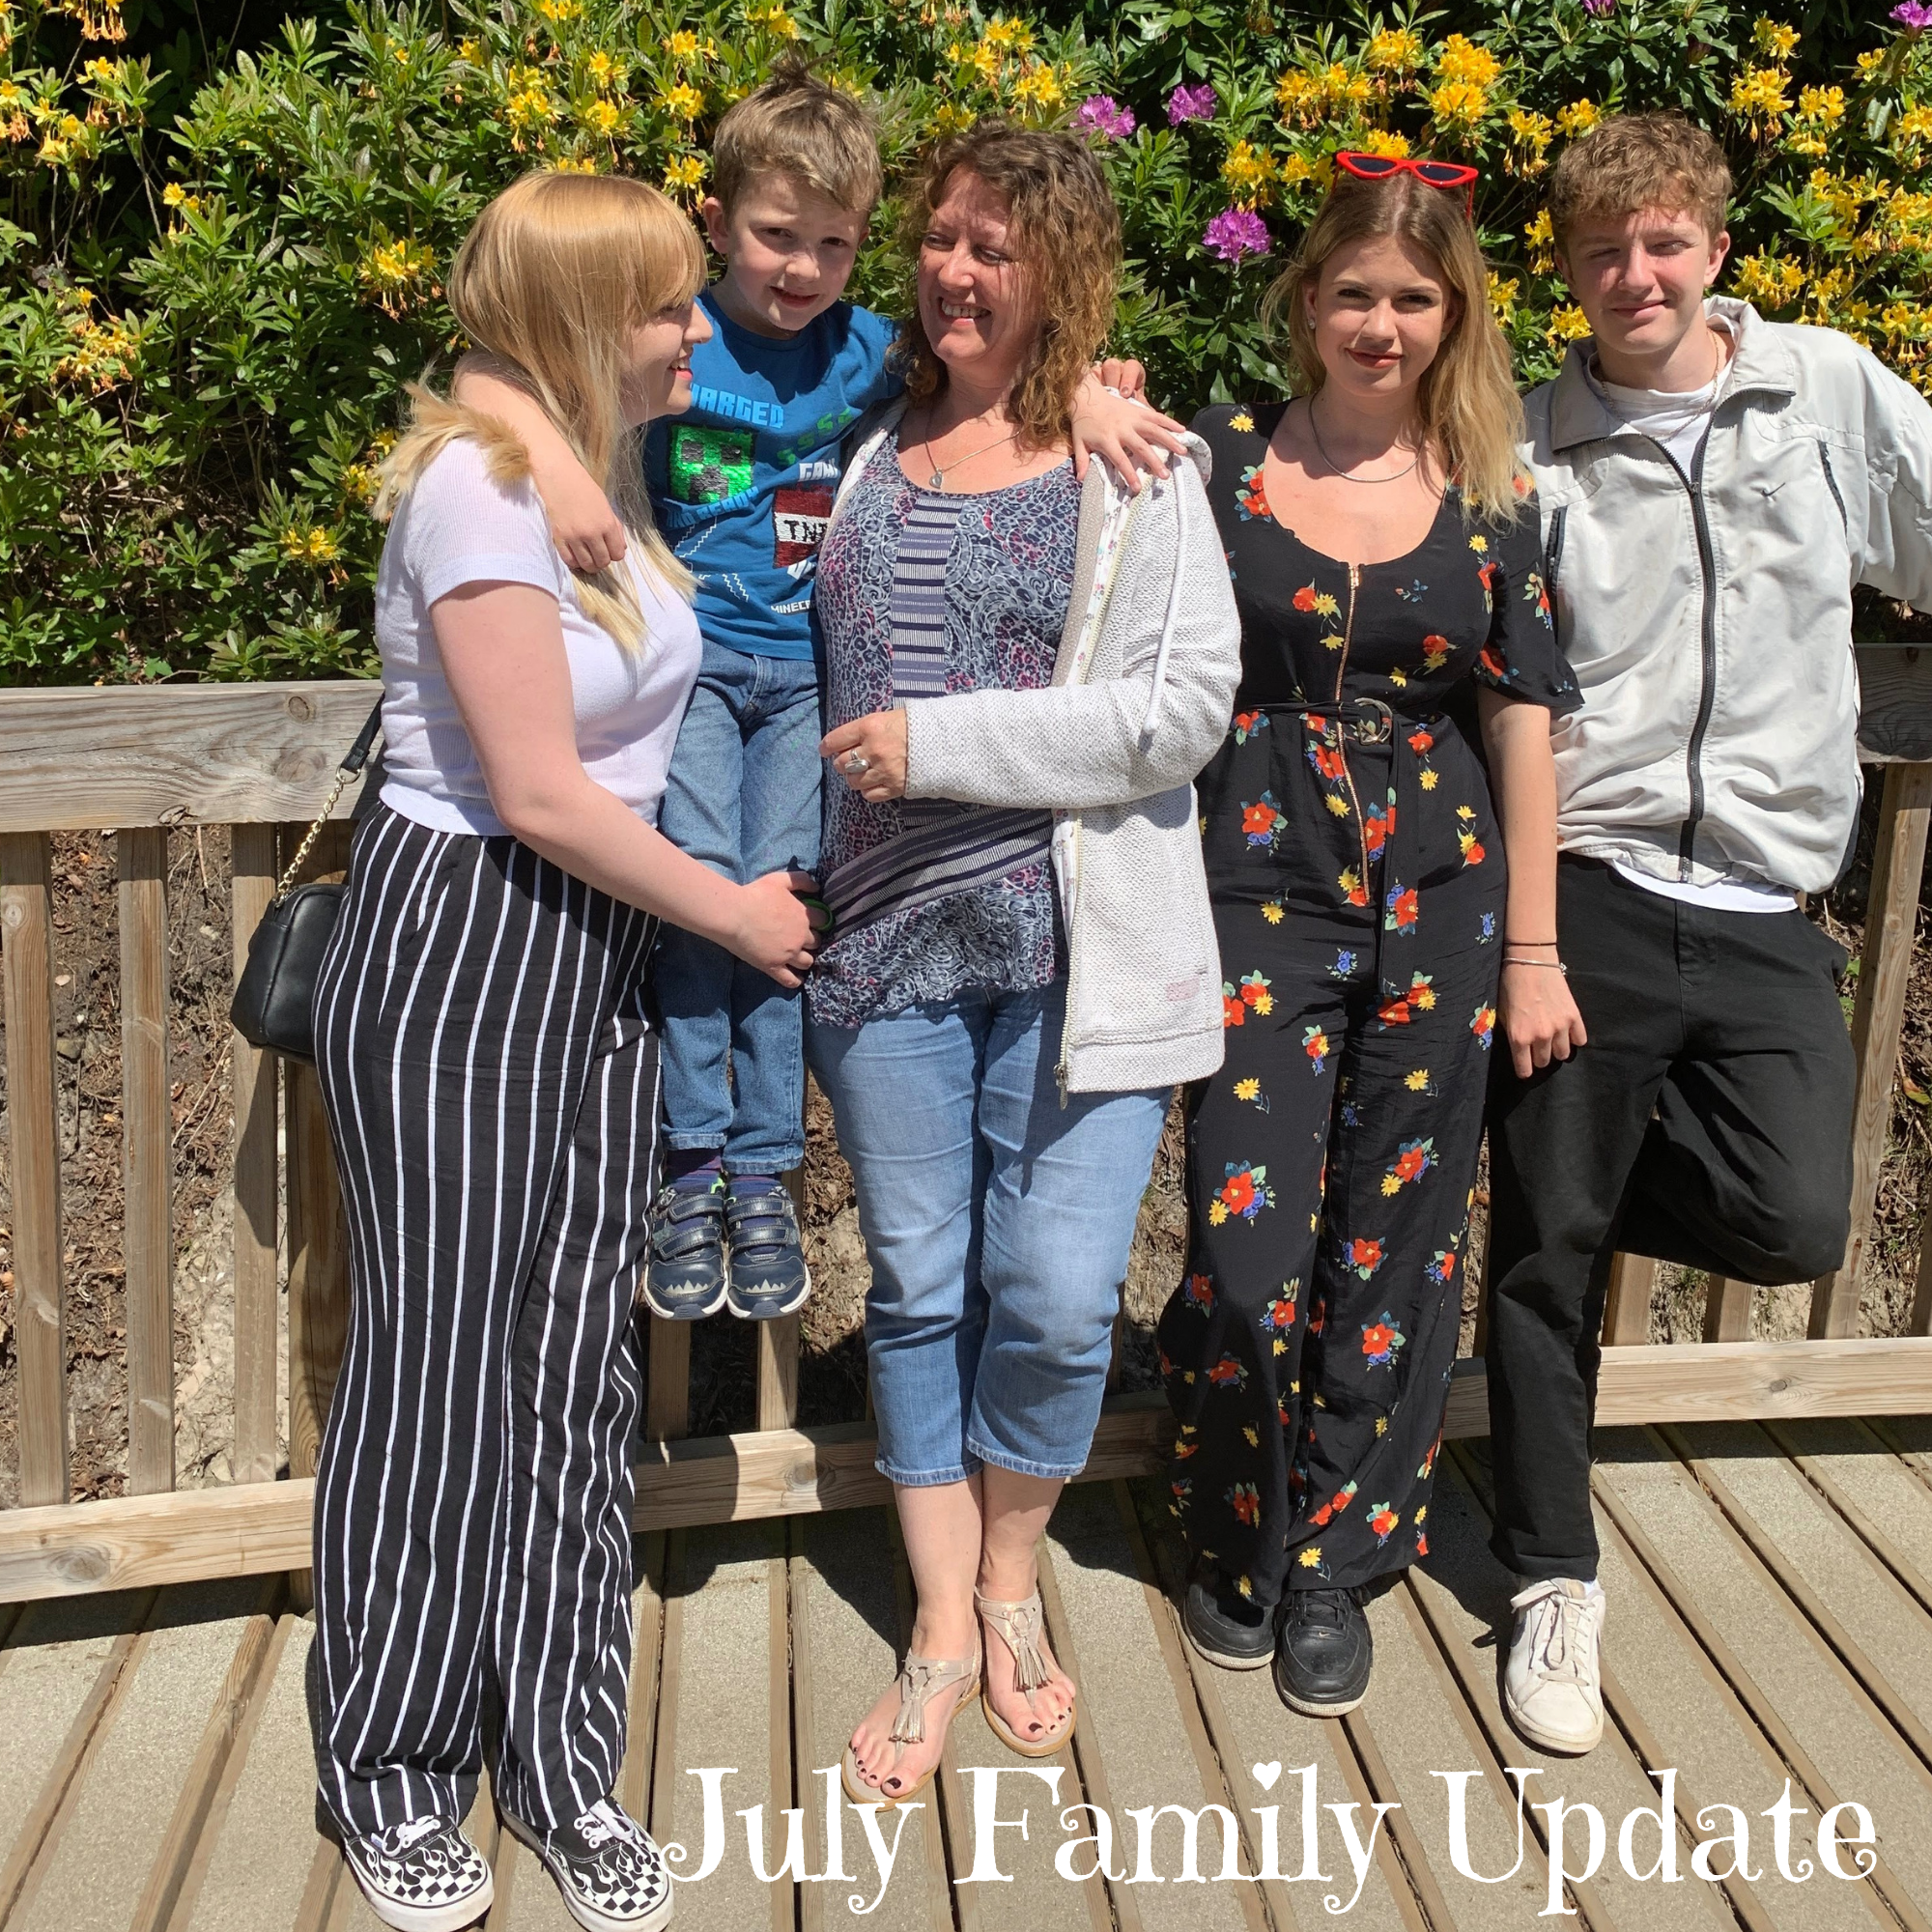 July Family Update